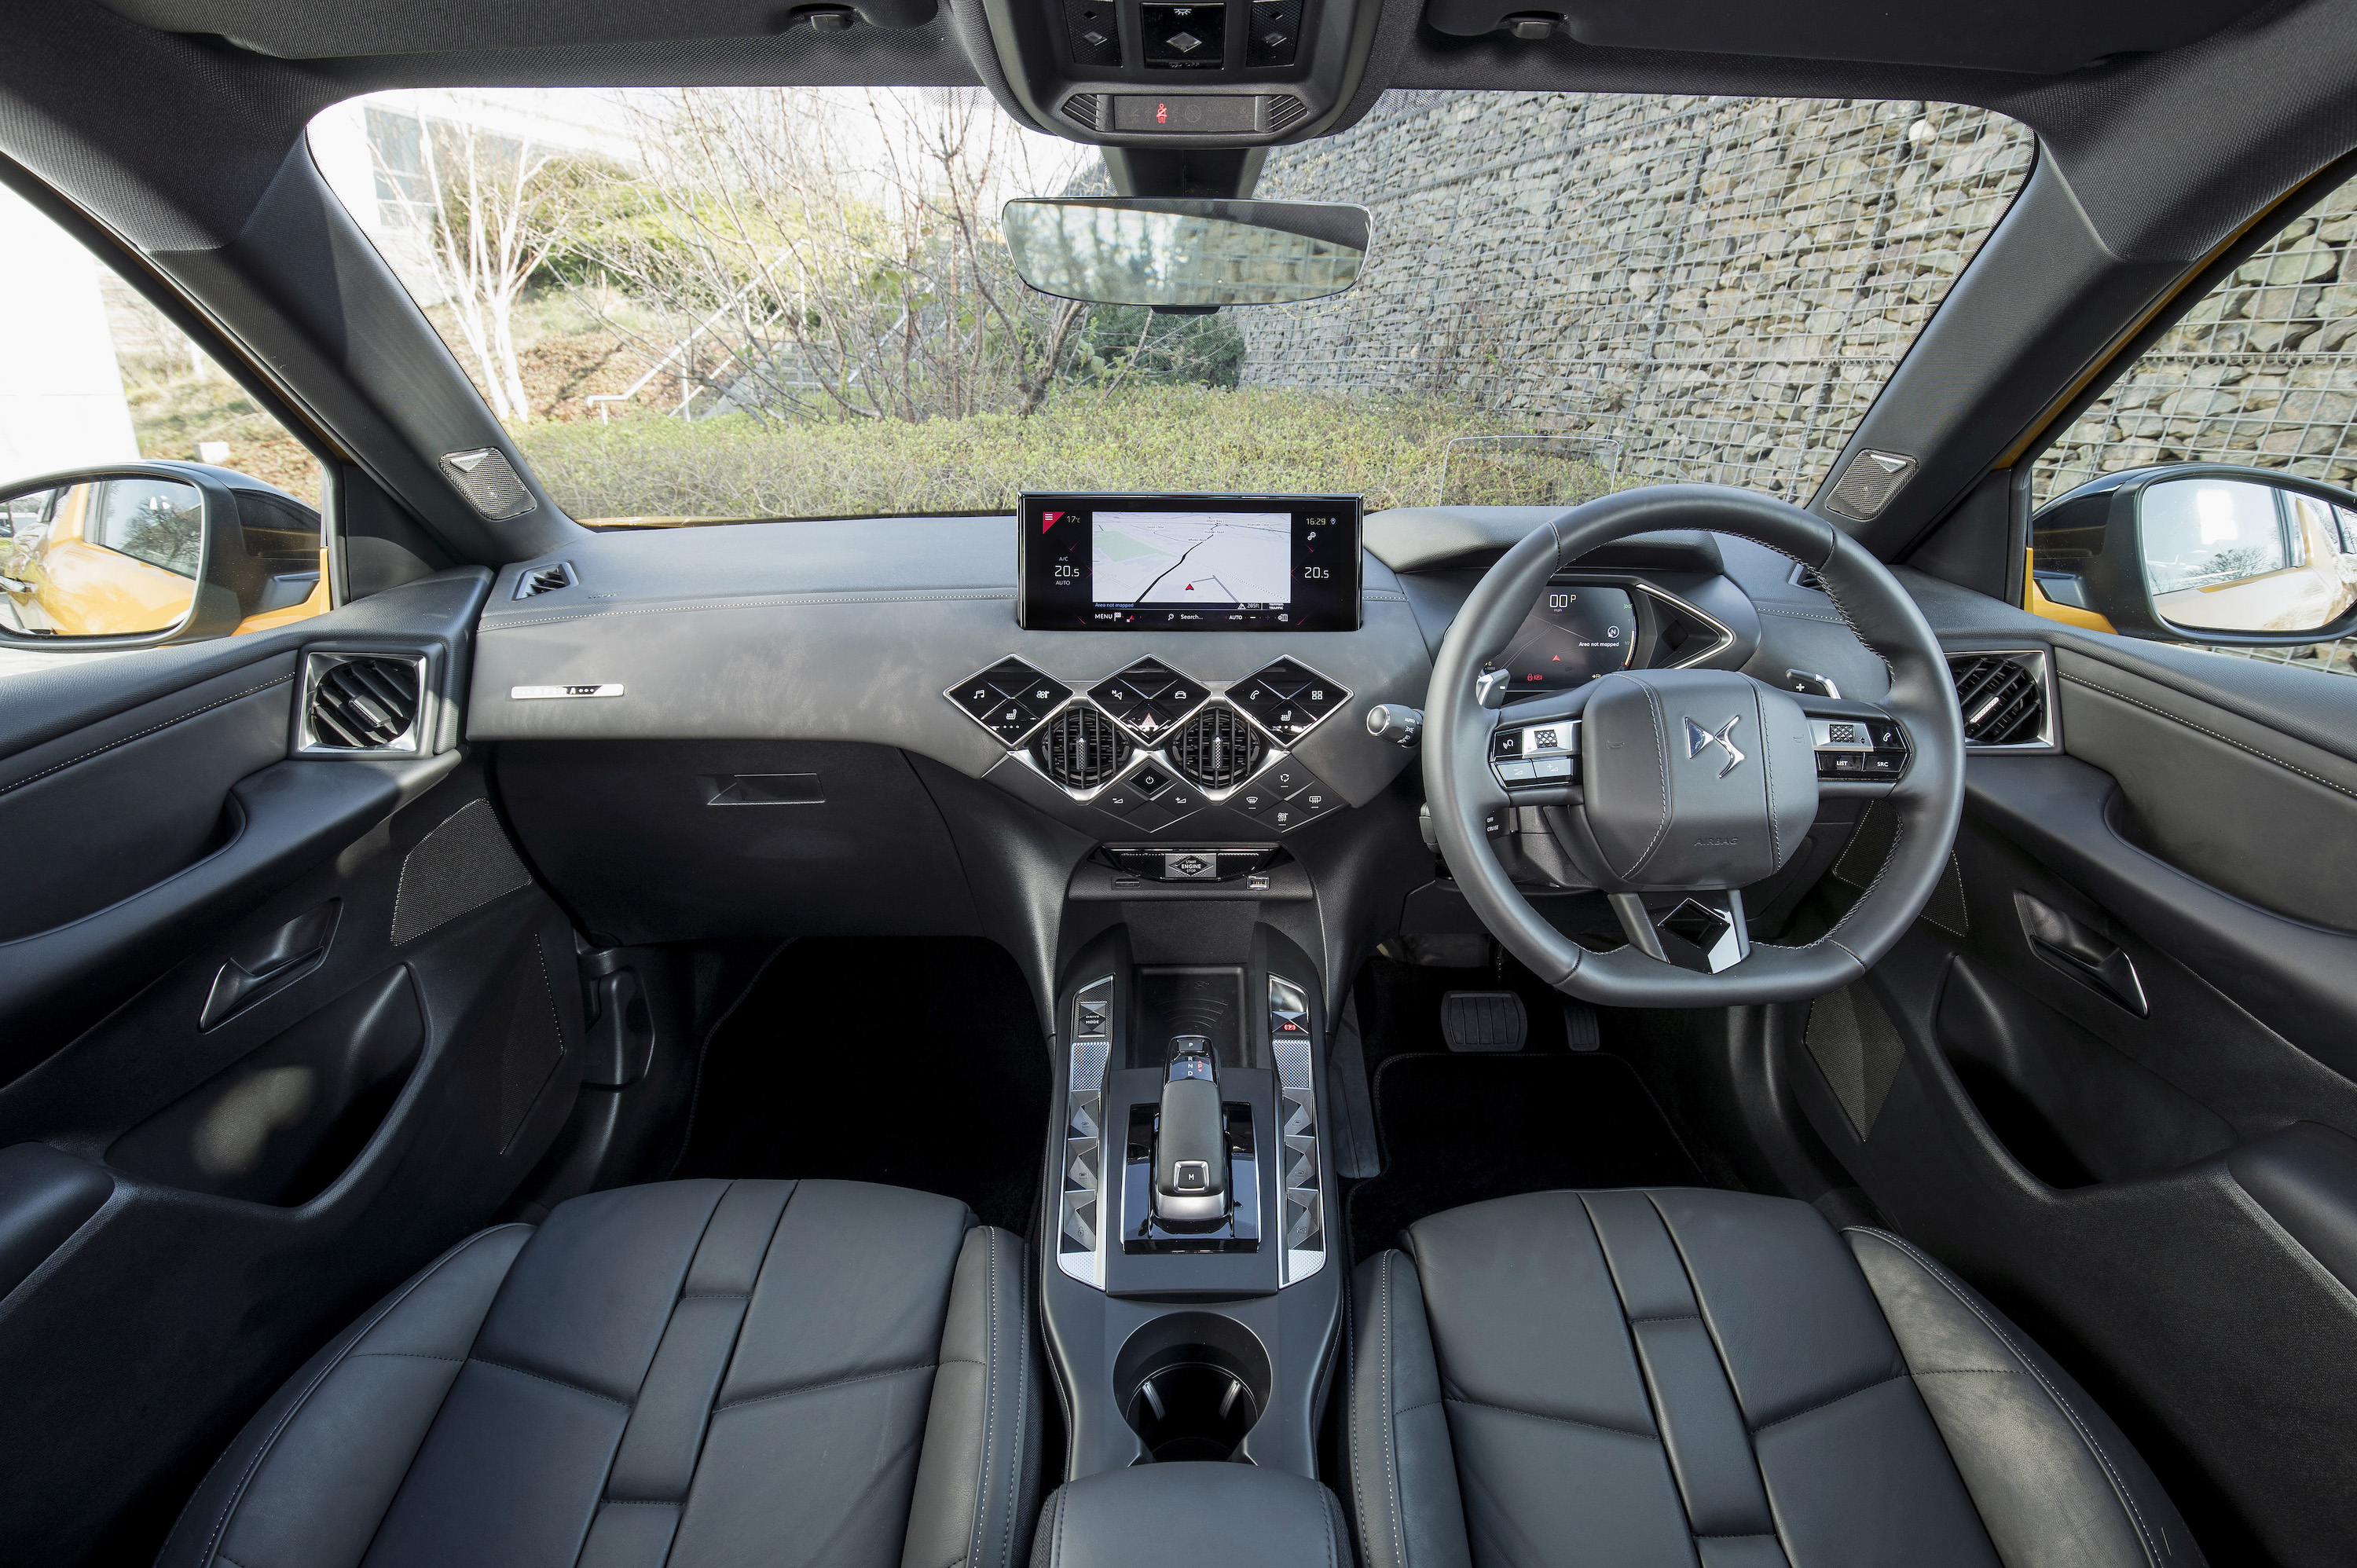 The DS 3 Crossback's interior is like few others